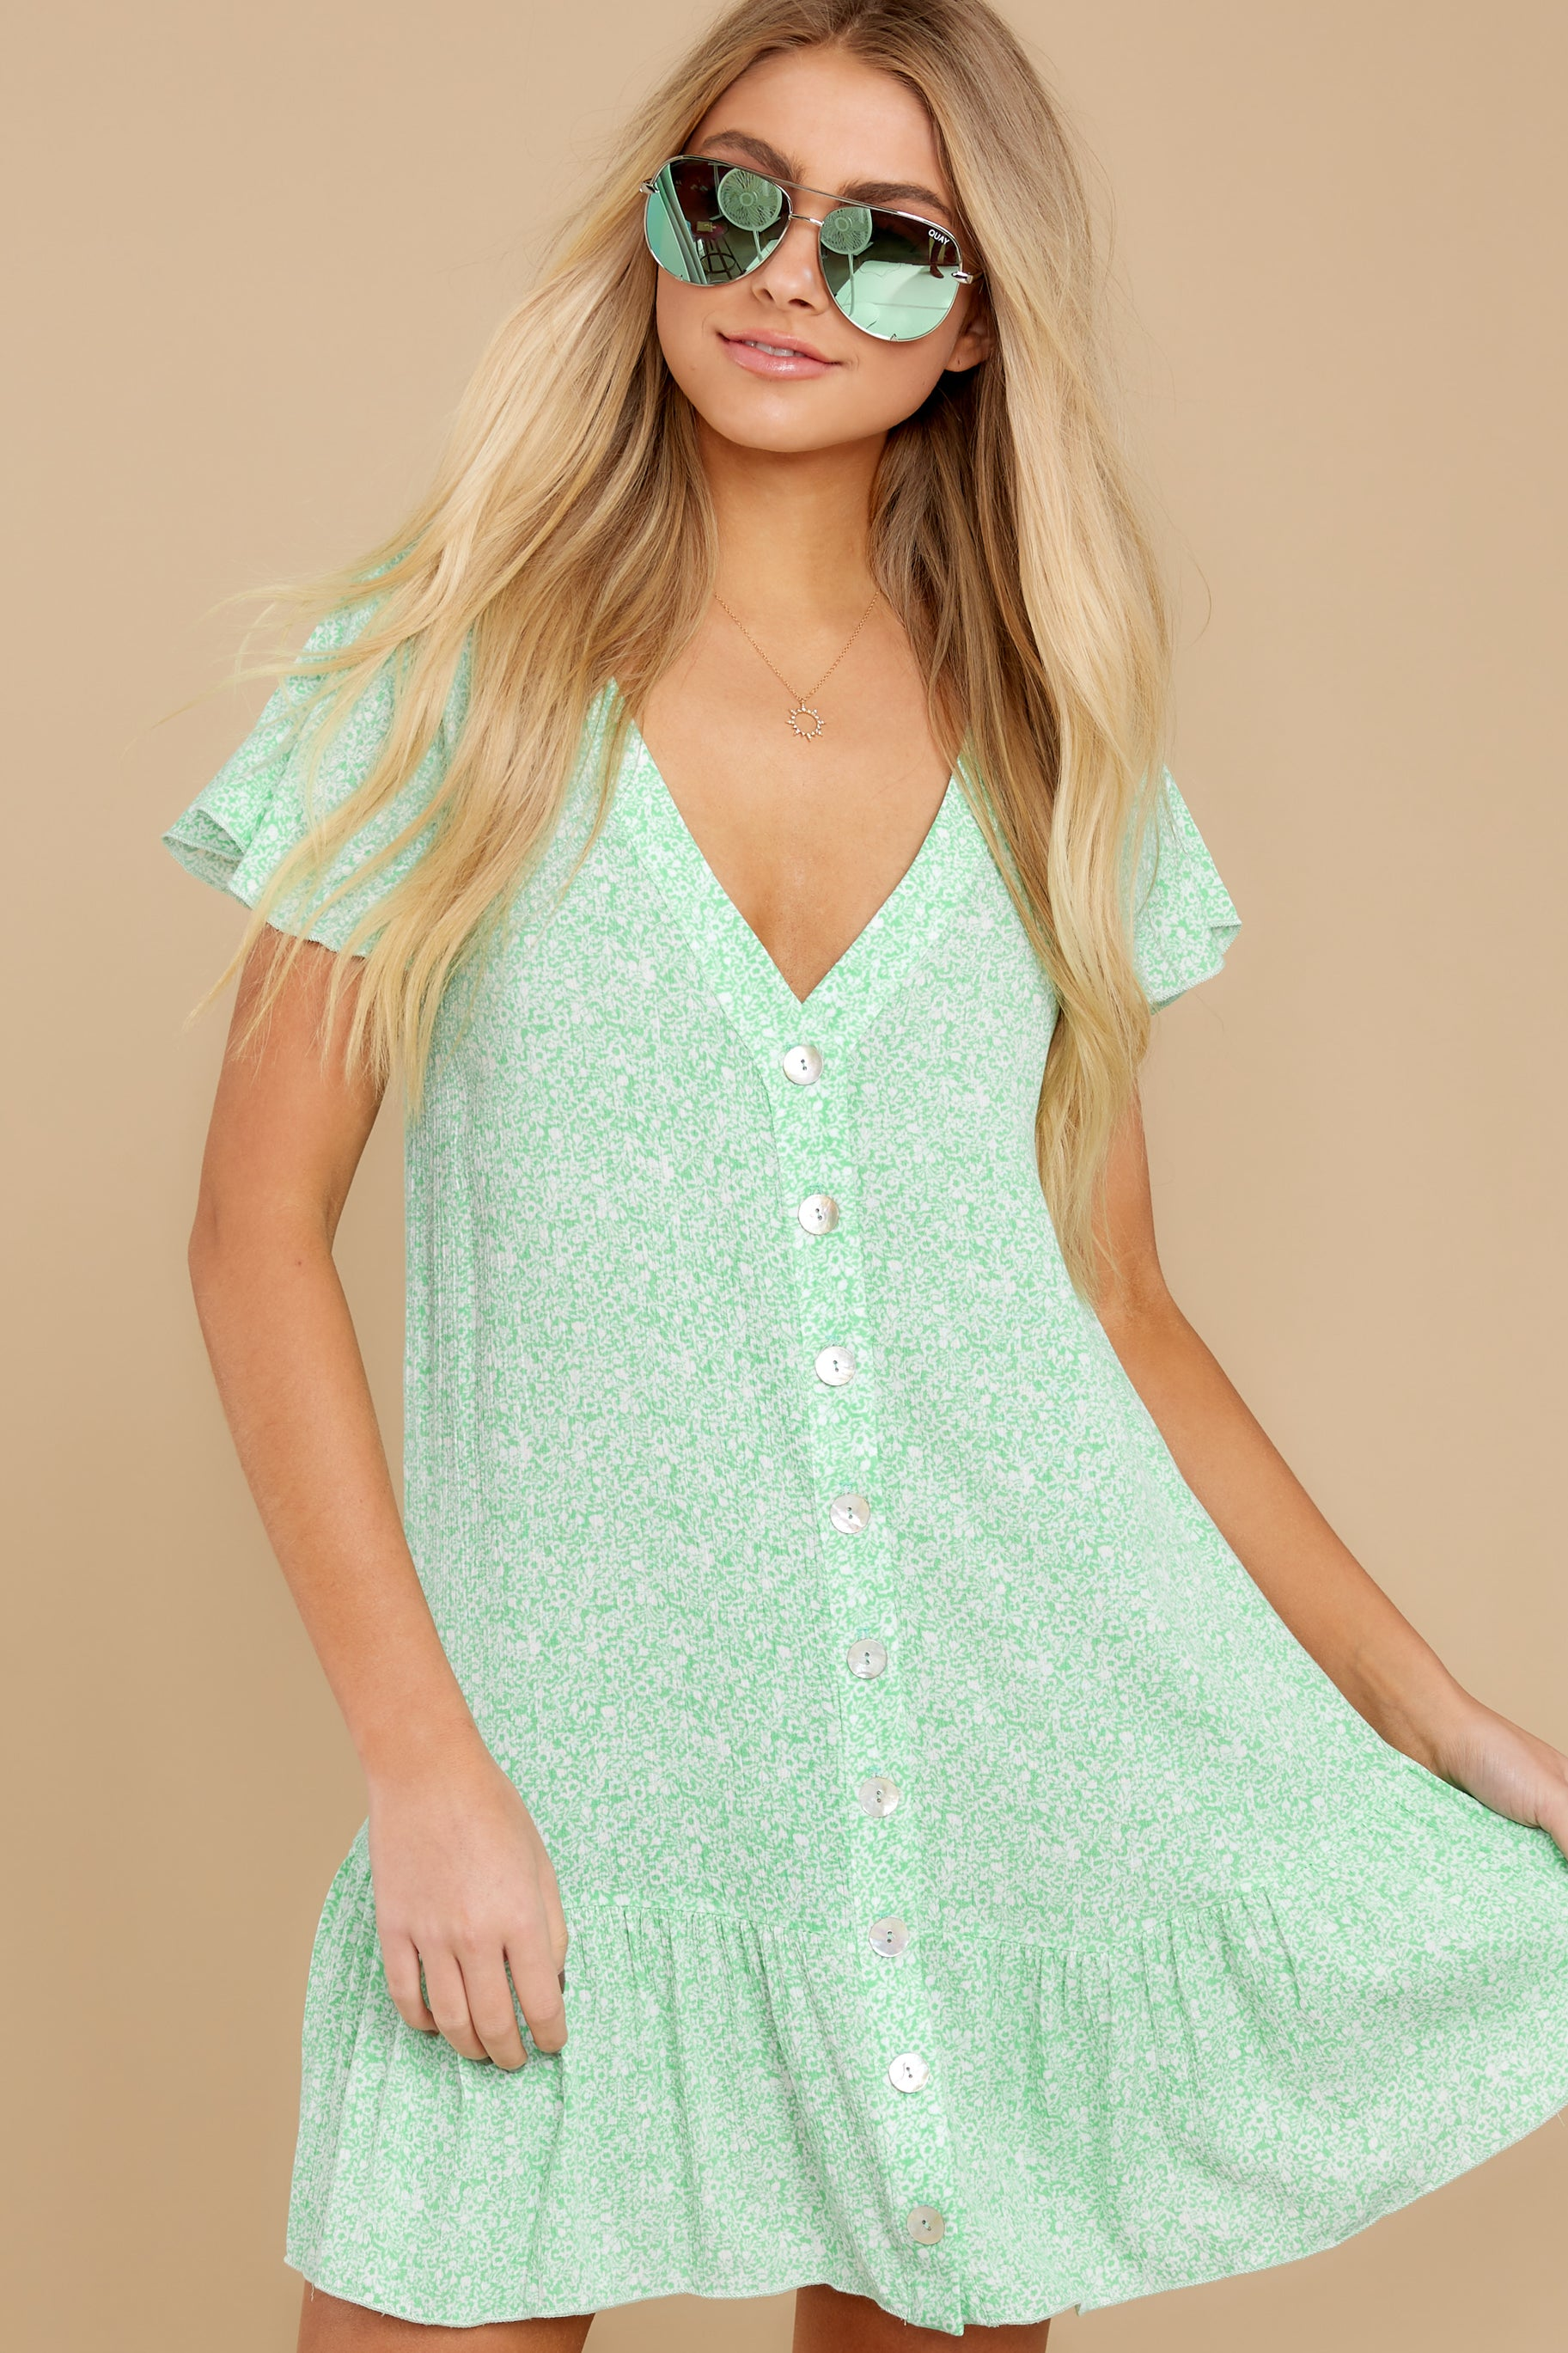 1 Moments Of Leisure Light Green Floral Print Dress at reddress.com